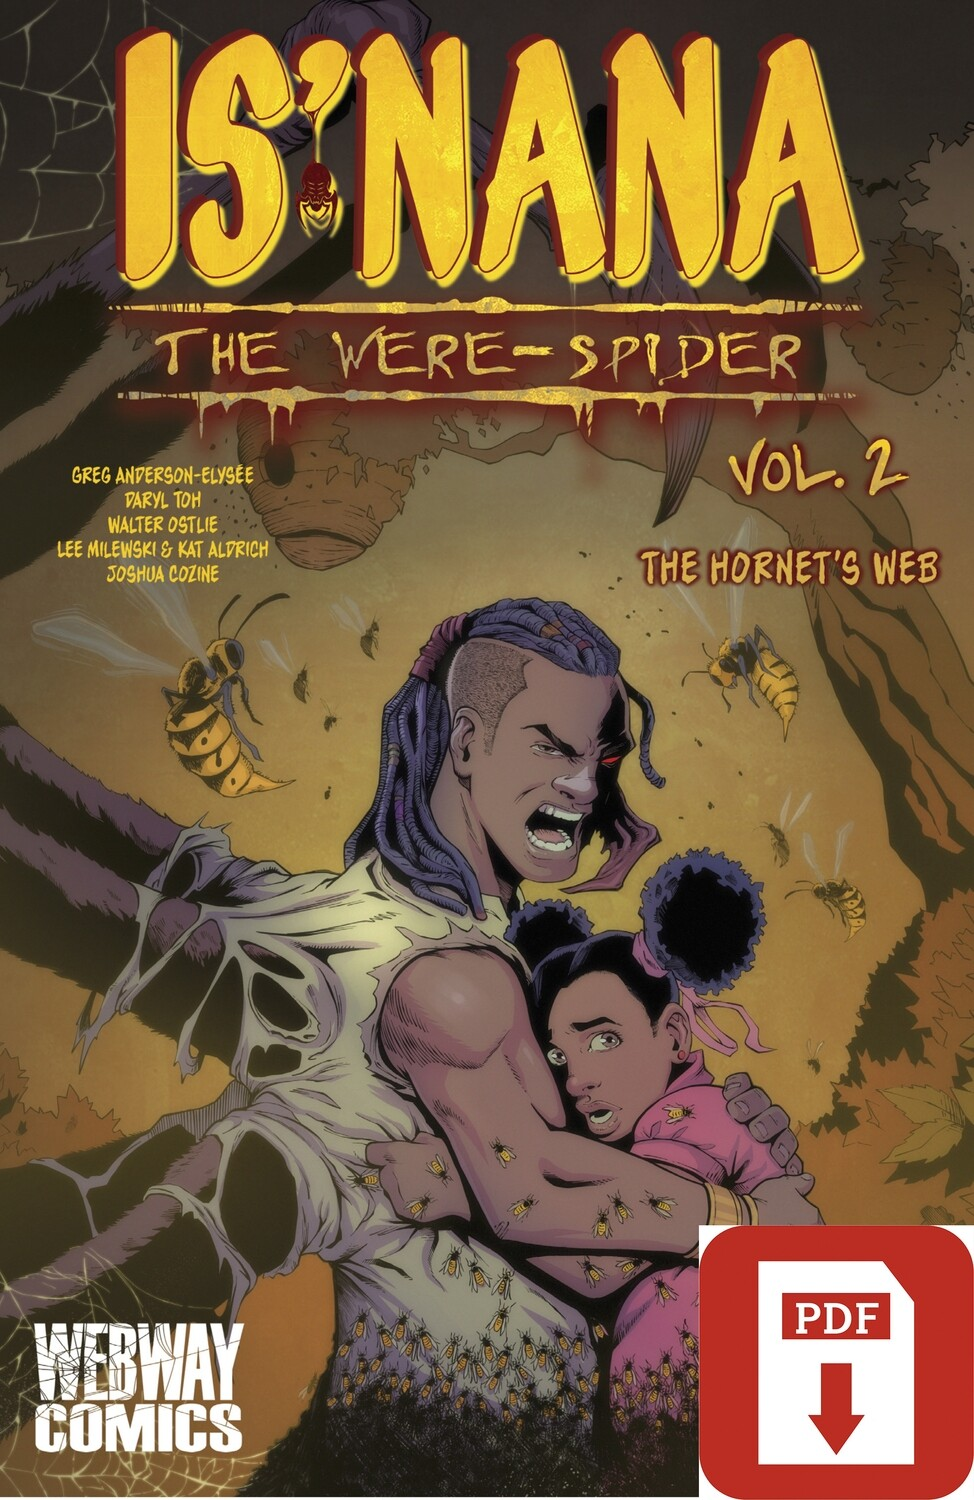 Is'nana the Were-Spider Vol 2: The Hornet's Web Digital PDF Download